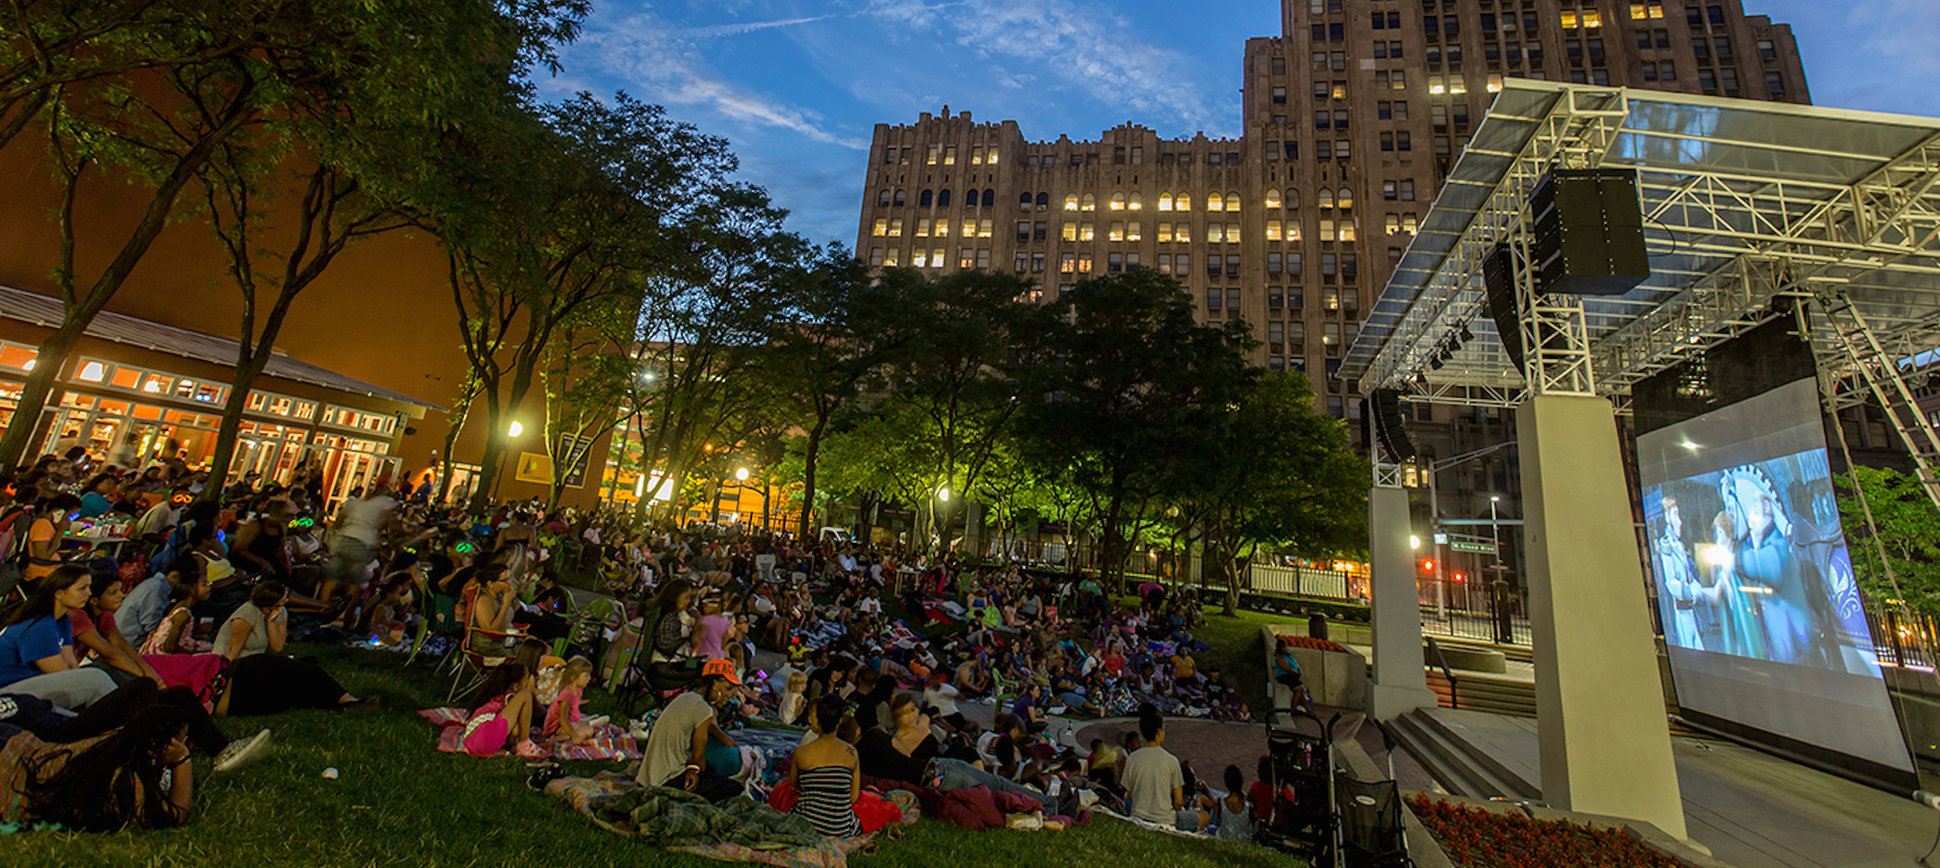 Every Outdoor Movie Playing in Detroit This Summer, in One Calendar